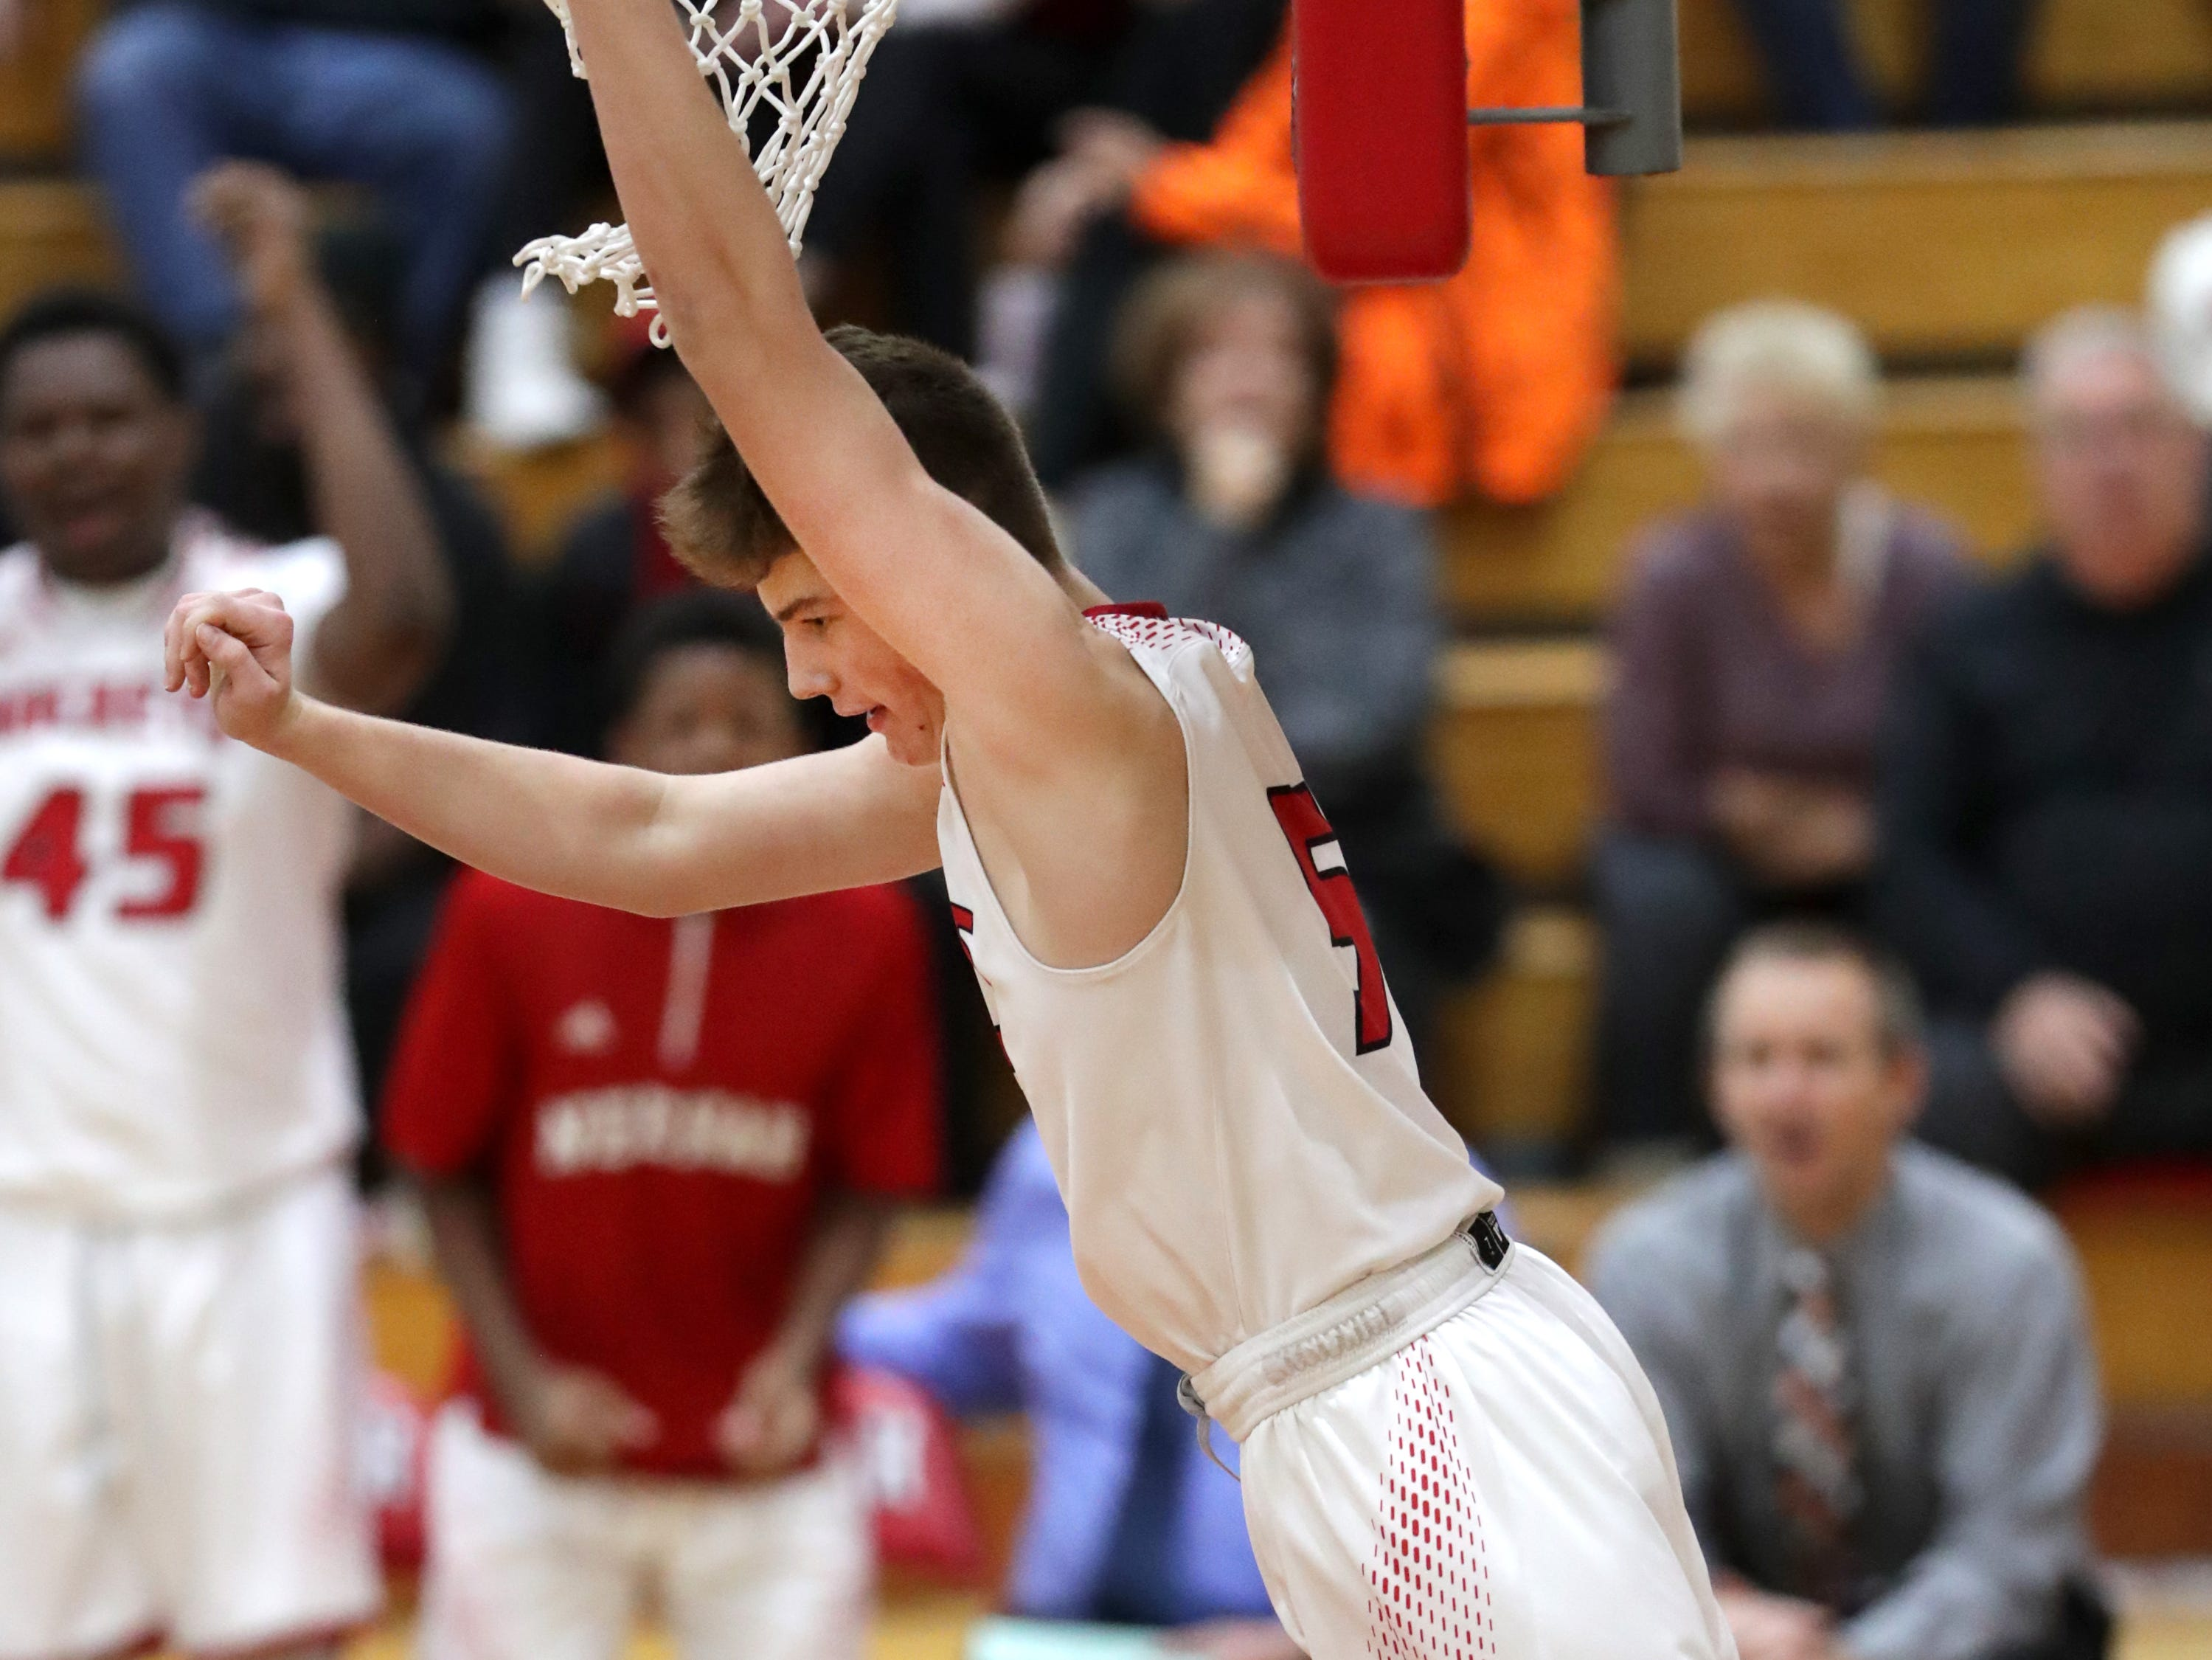 Neenah High School's #5 Max Klesmit  hangs from the rim against Hortonville High School during their Fox Valley Association boys basketball game on Friday, November 30, 2018, in Neenah, Wis. Neenah defeated Hortonville 71 to 67 in overtime.Wm. Glasheen/USA TODAY NETWORK-Wisconsin.